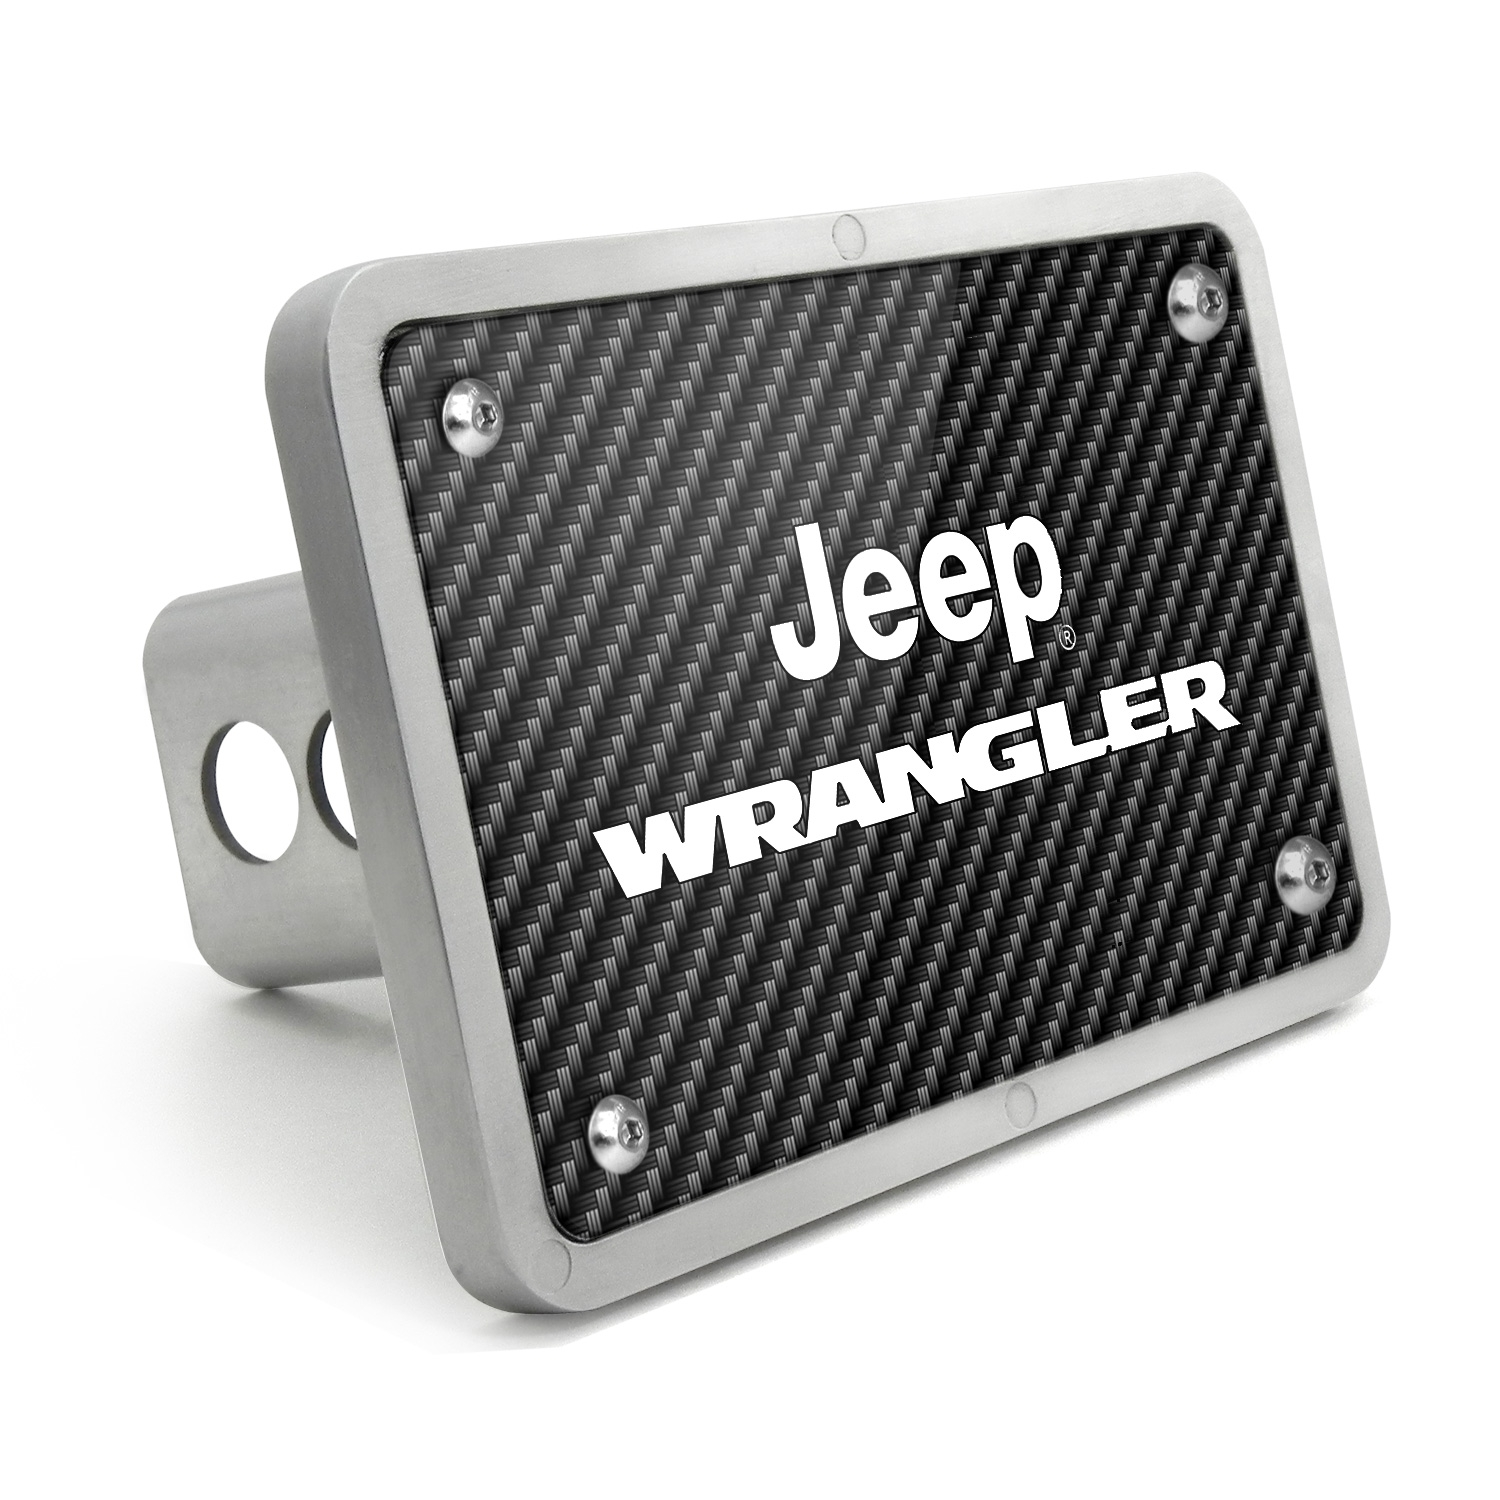 Jeep Wrangler UV Graphic Carbon Fiber Texture Billet Aluminum 2 inch Tow Hitch Cover